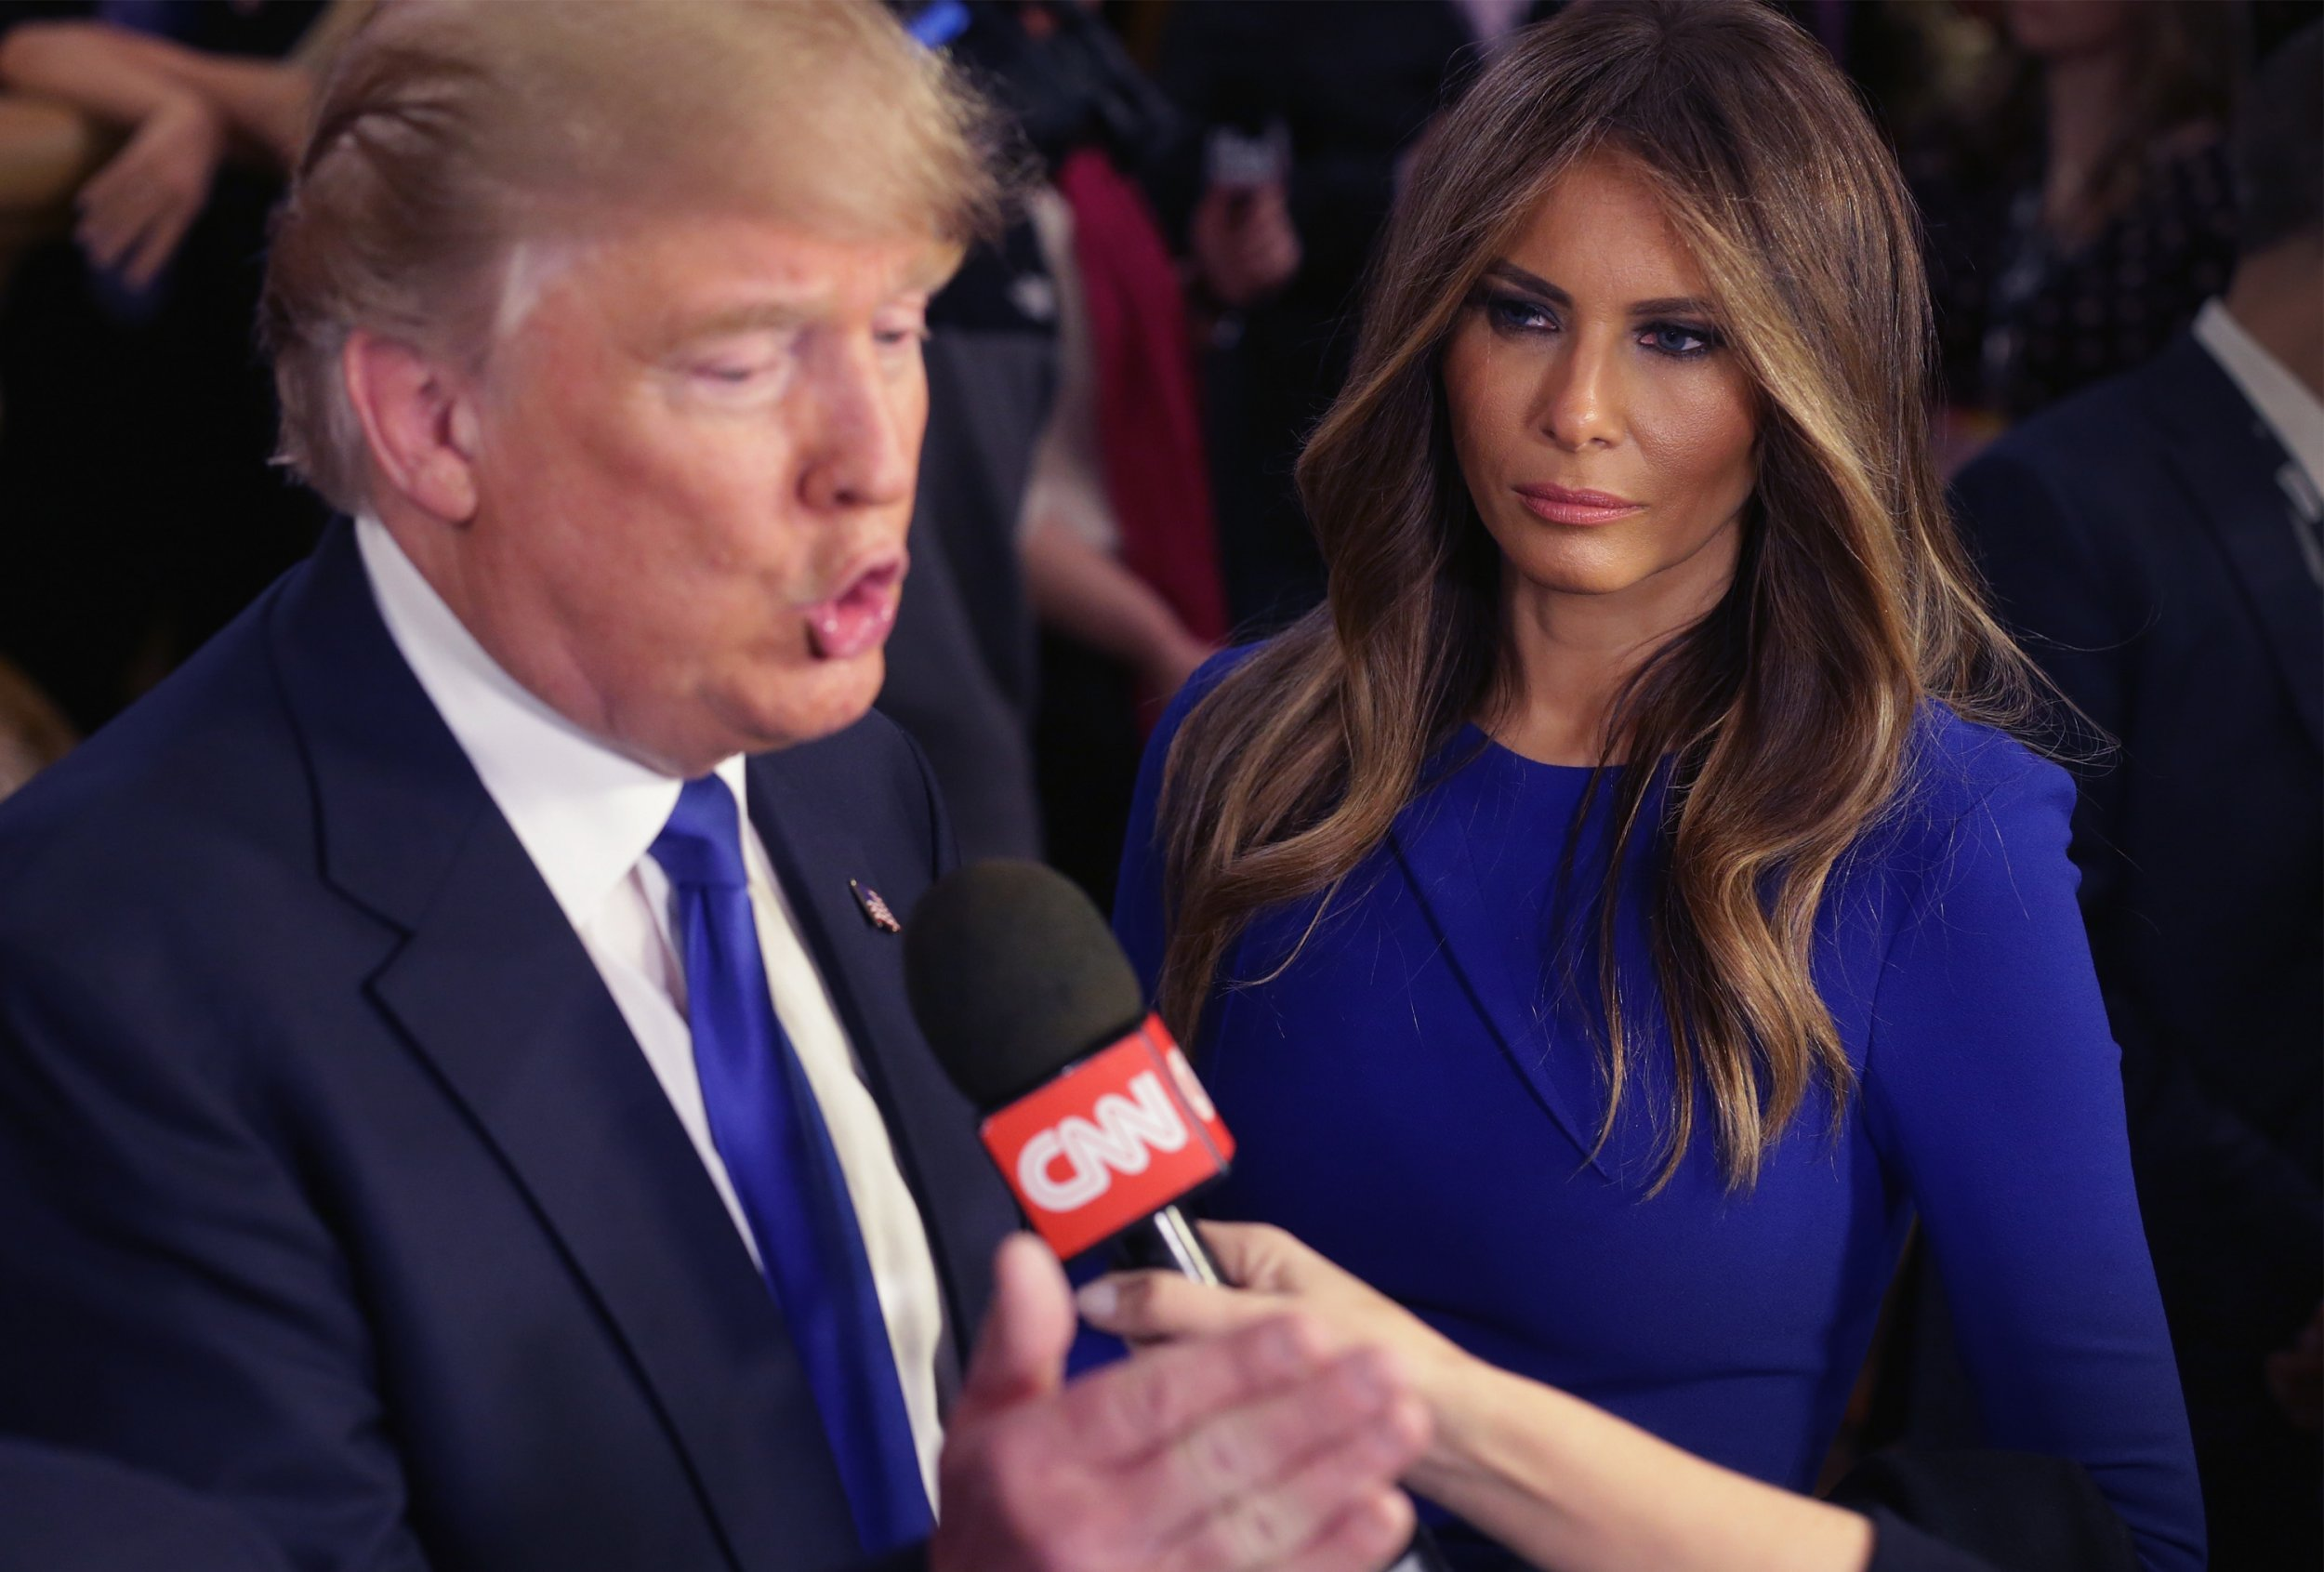 melania trump, fox news, tv, donald, hannity